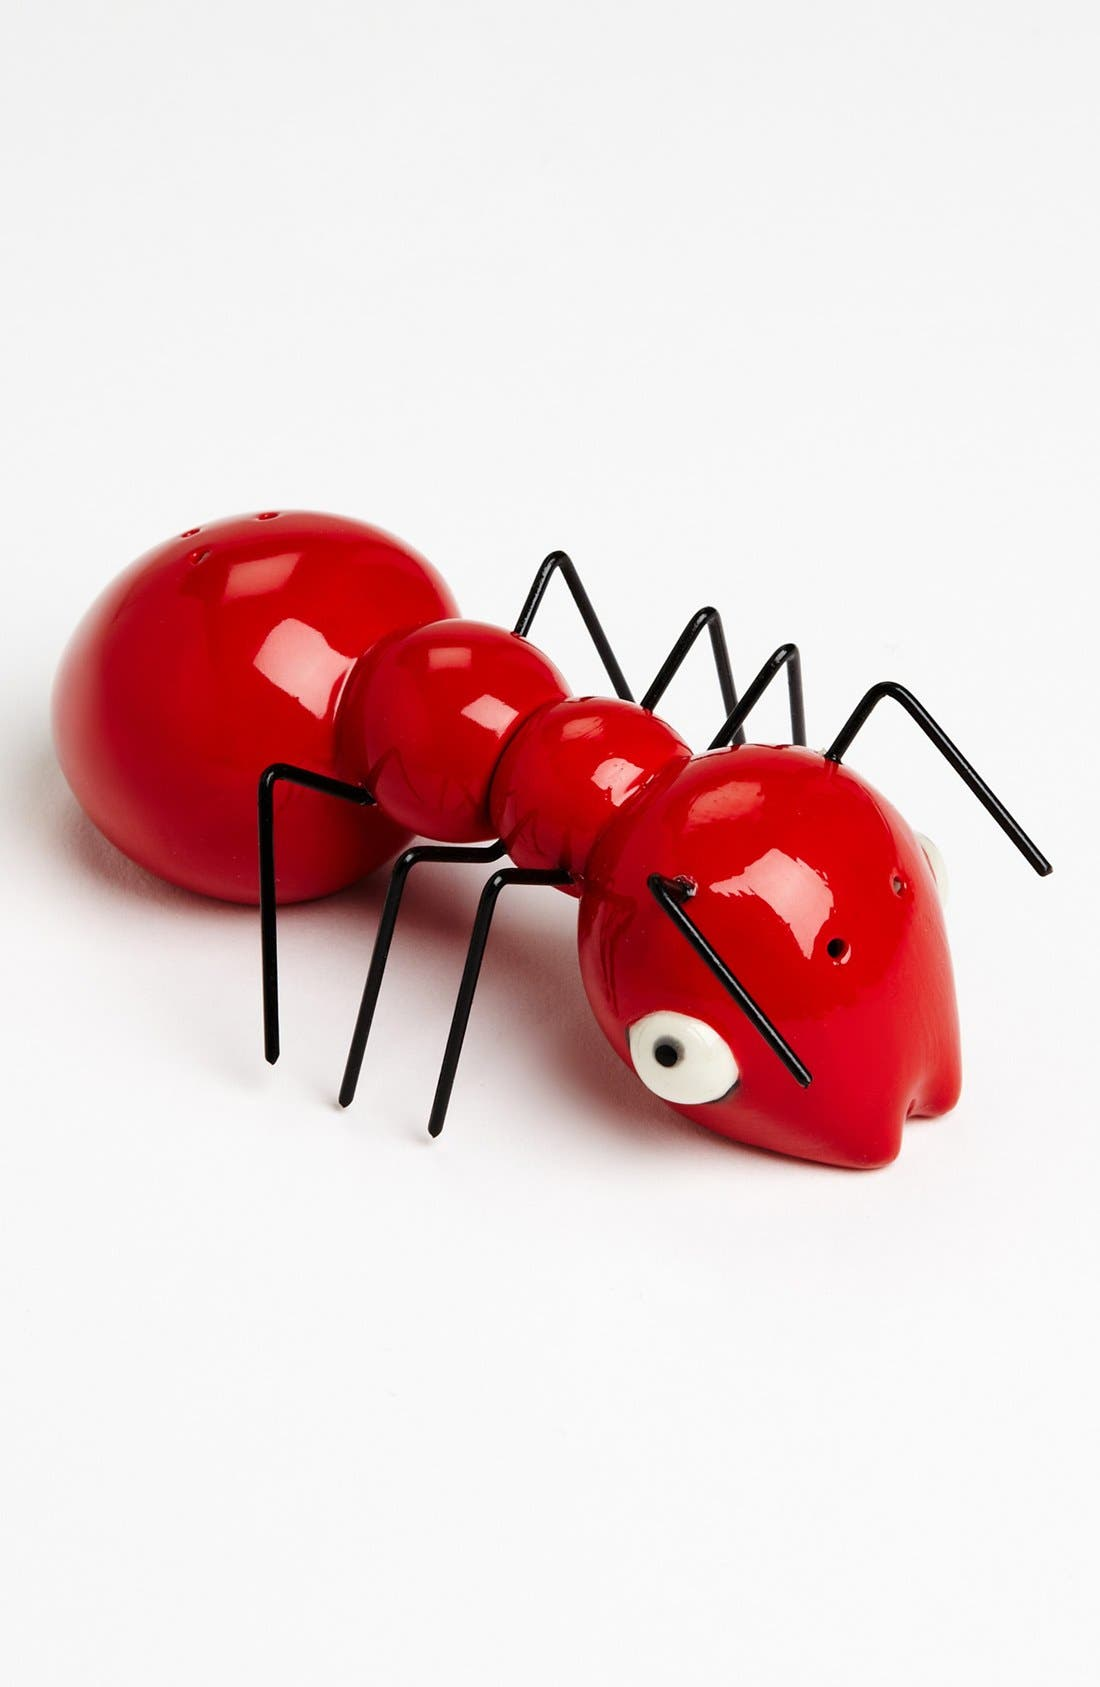 Alternate Image 1 Selected - Ant Salt & Pepper Shakers